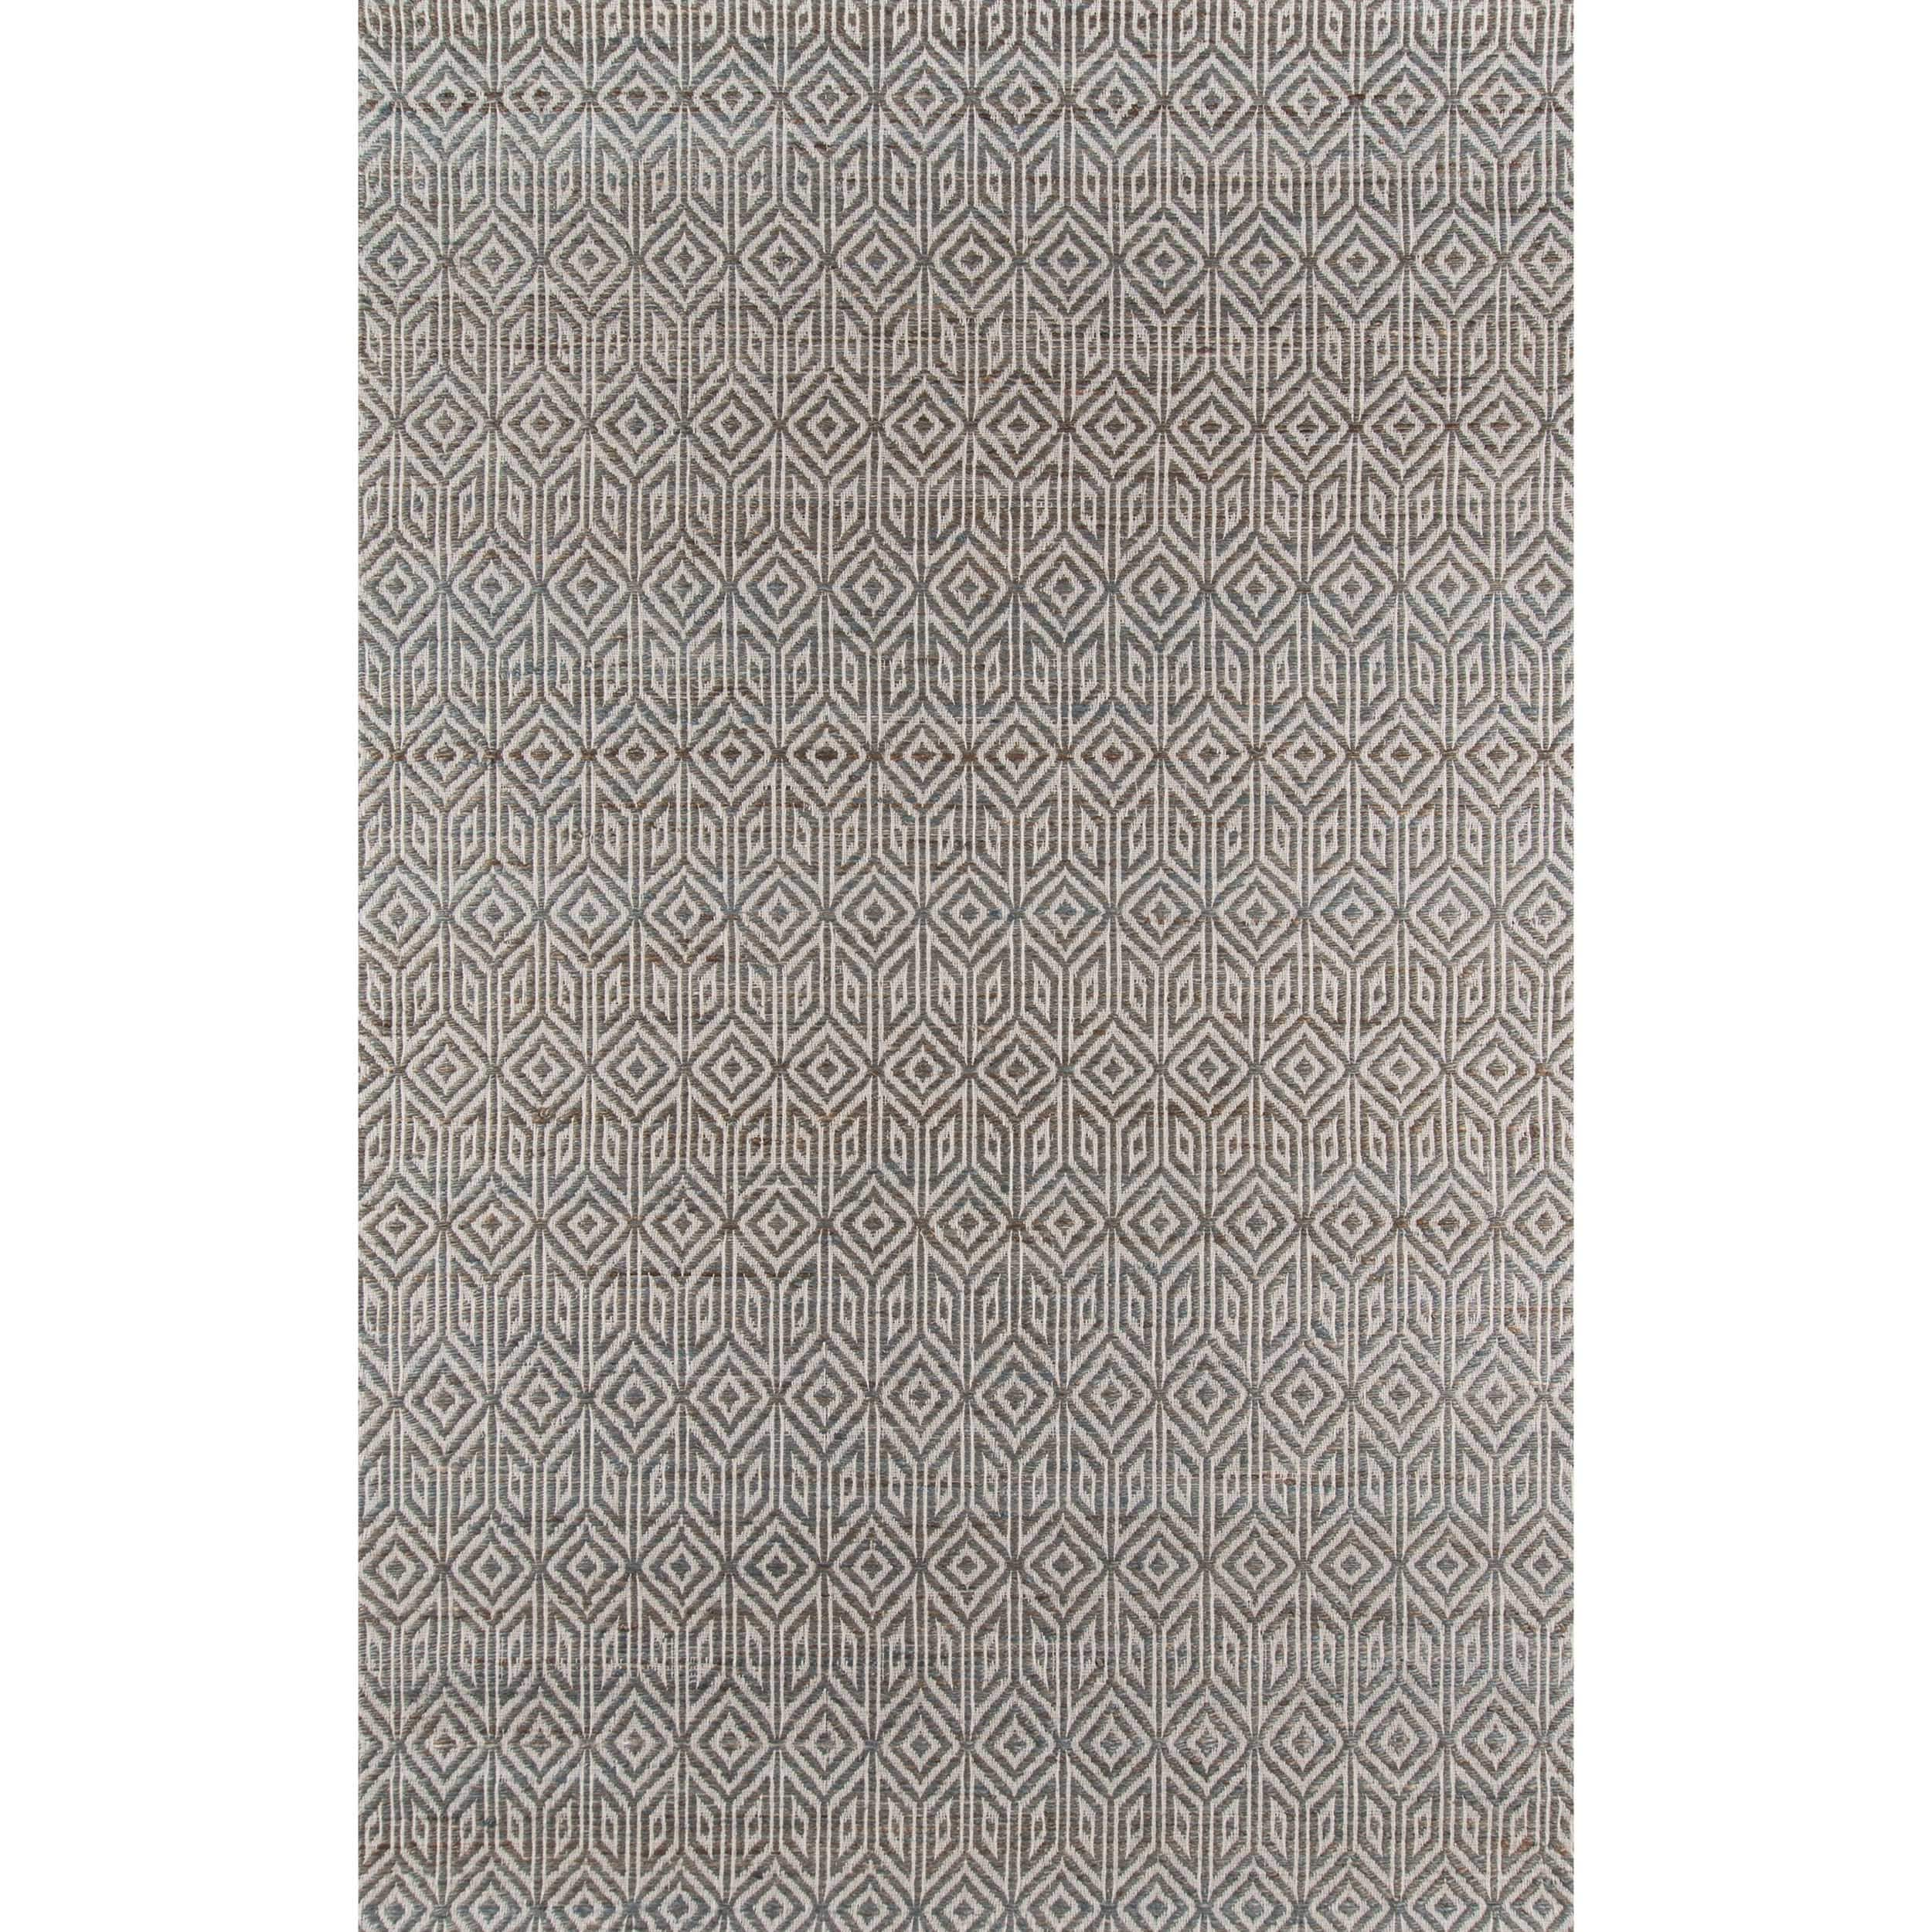 Momeni Bengal Grey Jute Flatweave Area Rug 2 X 3 On Free Shipping Orders Over 45 16701128